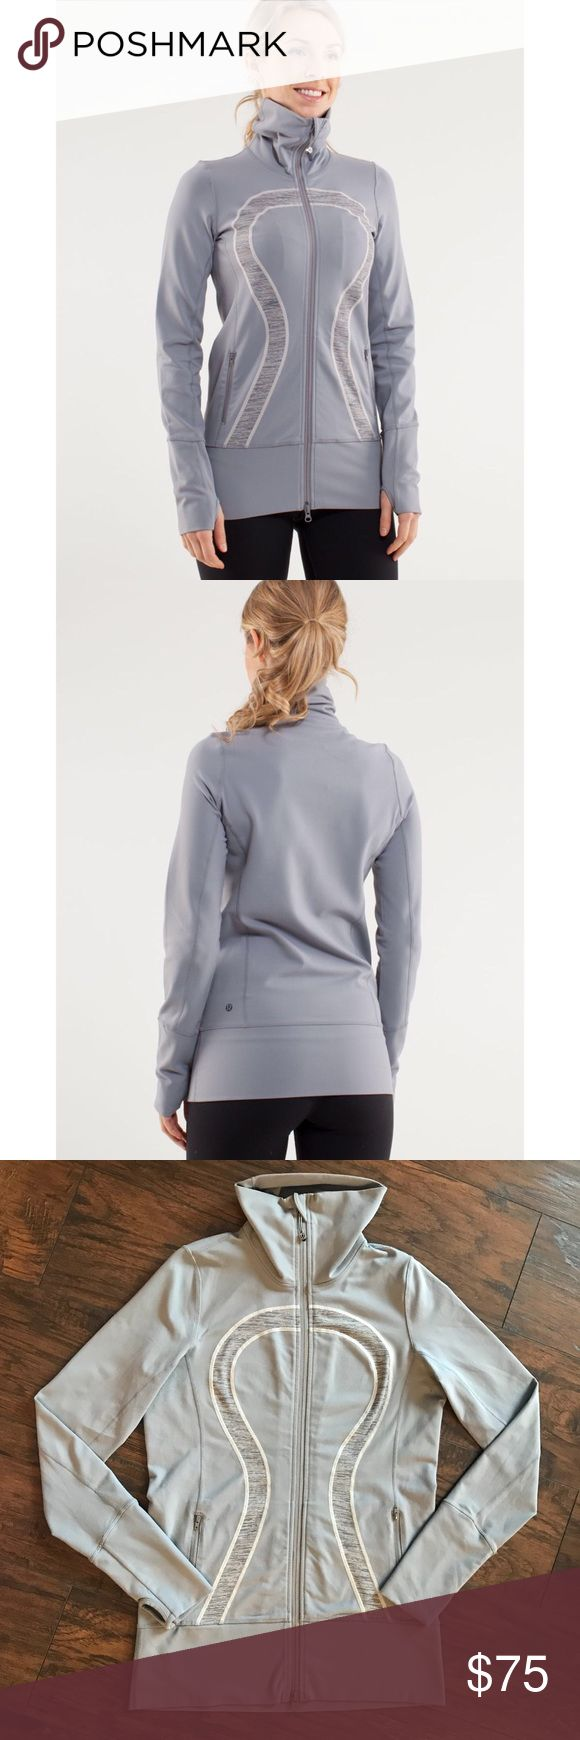 Lululemon Athletica In Stride full zip up jacket 8 Lululemon In Stride zip up jacket in size 8, fossil gray color. Great preowned condition. True color is closer to stock photos! lululemon athletica Jackets & Coats